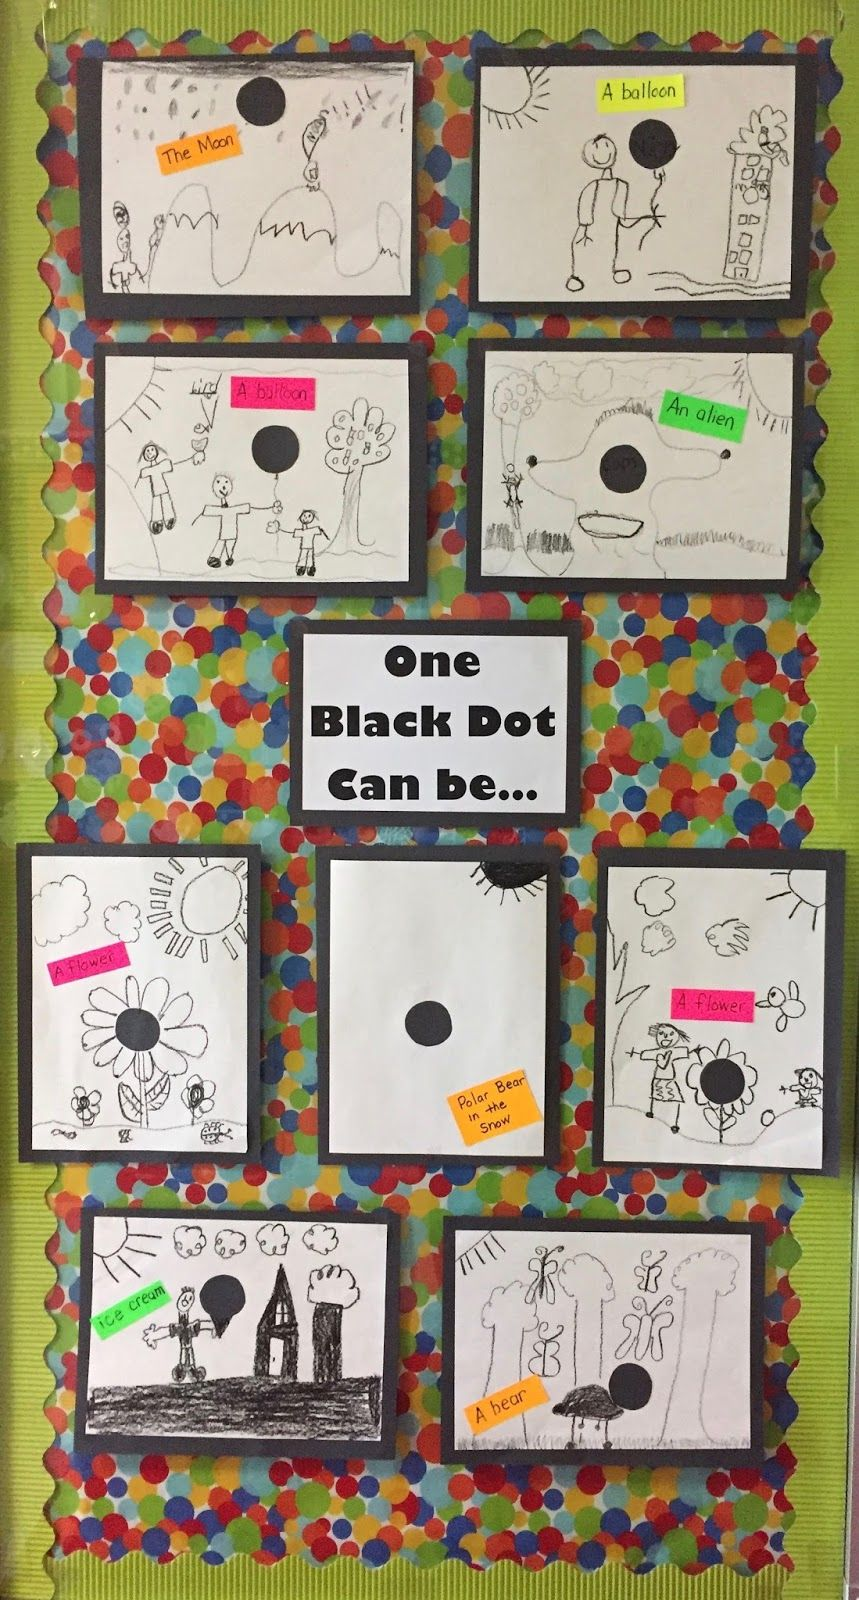 Join my on my journey in my First Grade Classroom!  Come on by for a visit because there's always something fun happening in Firstieland! #dotdayartprojects